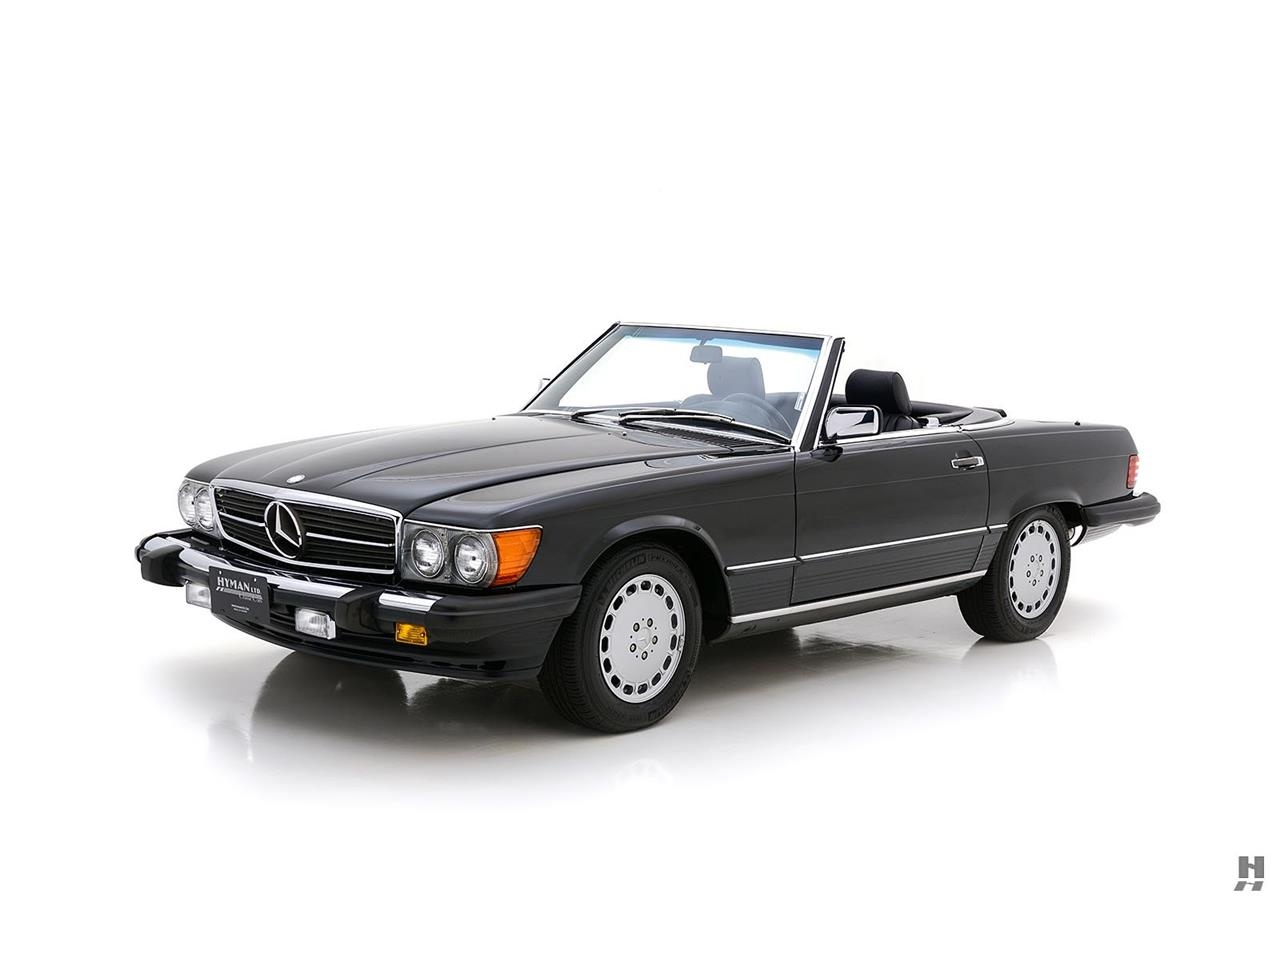 for sale 1989 mercedes-benz 560sl in saint louis, missouri cars - saint louis, mo at geebo